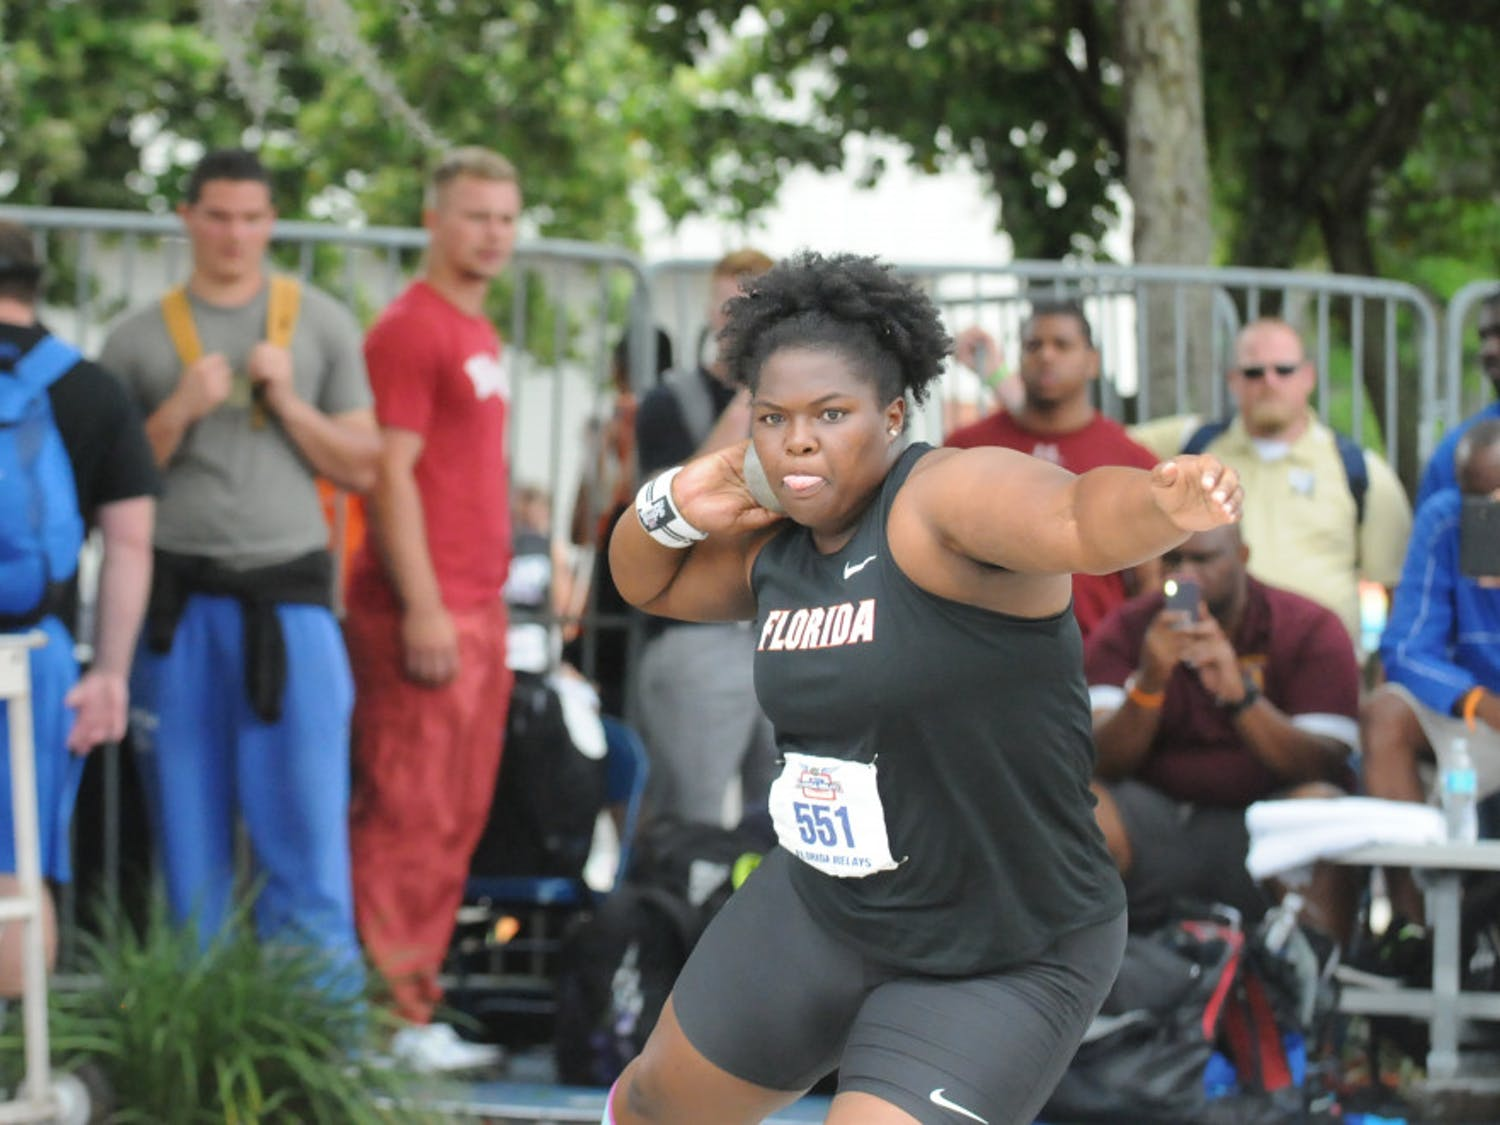 Senior Lloydricia Cameron ran away with the shot put title at the Bayou Bengal Invitational, winning by over 2 meters.